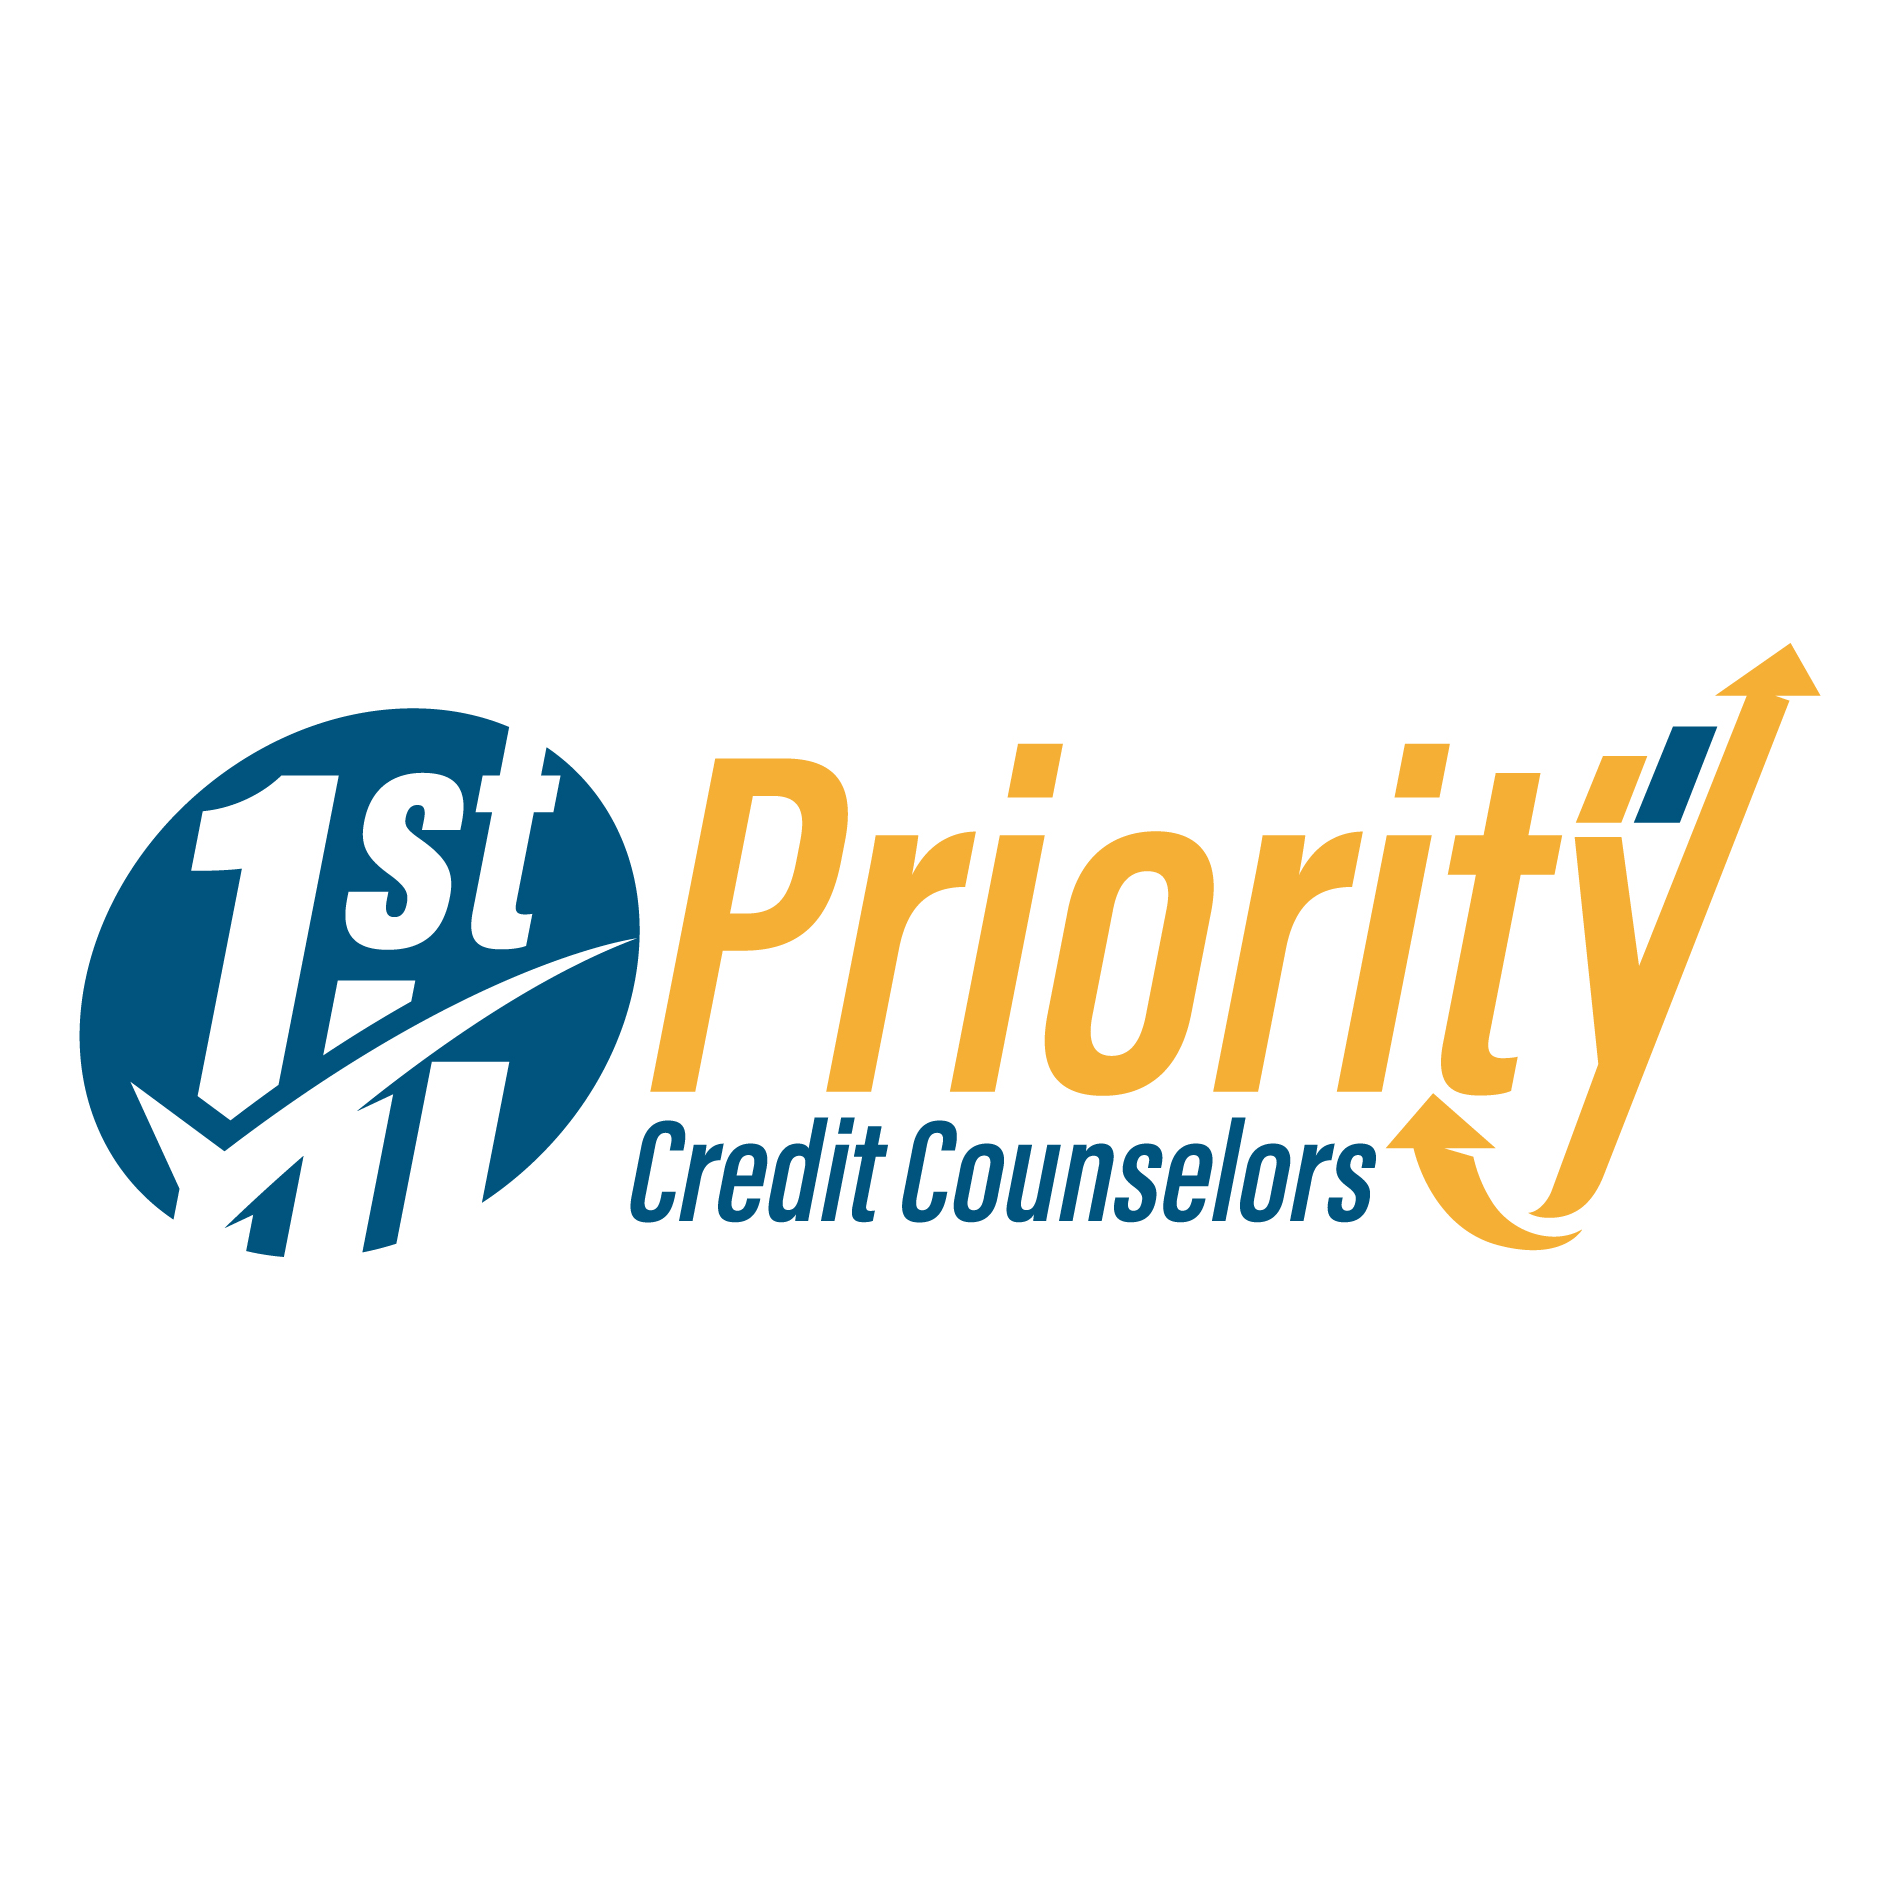 1st Priority Credit Counselors 2